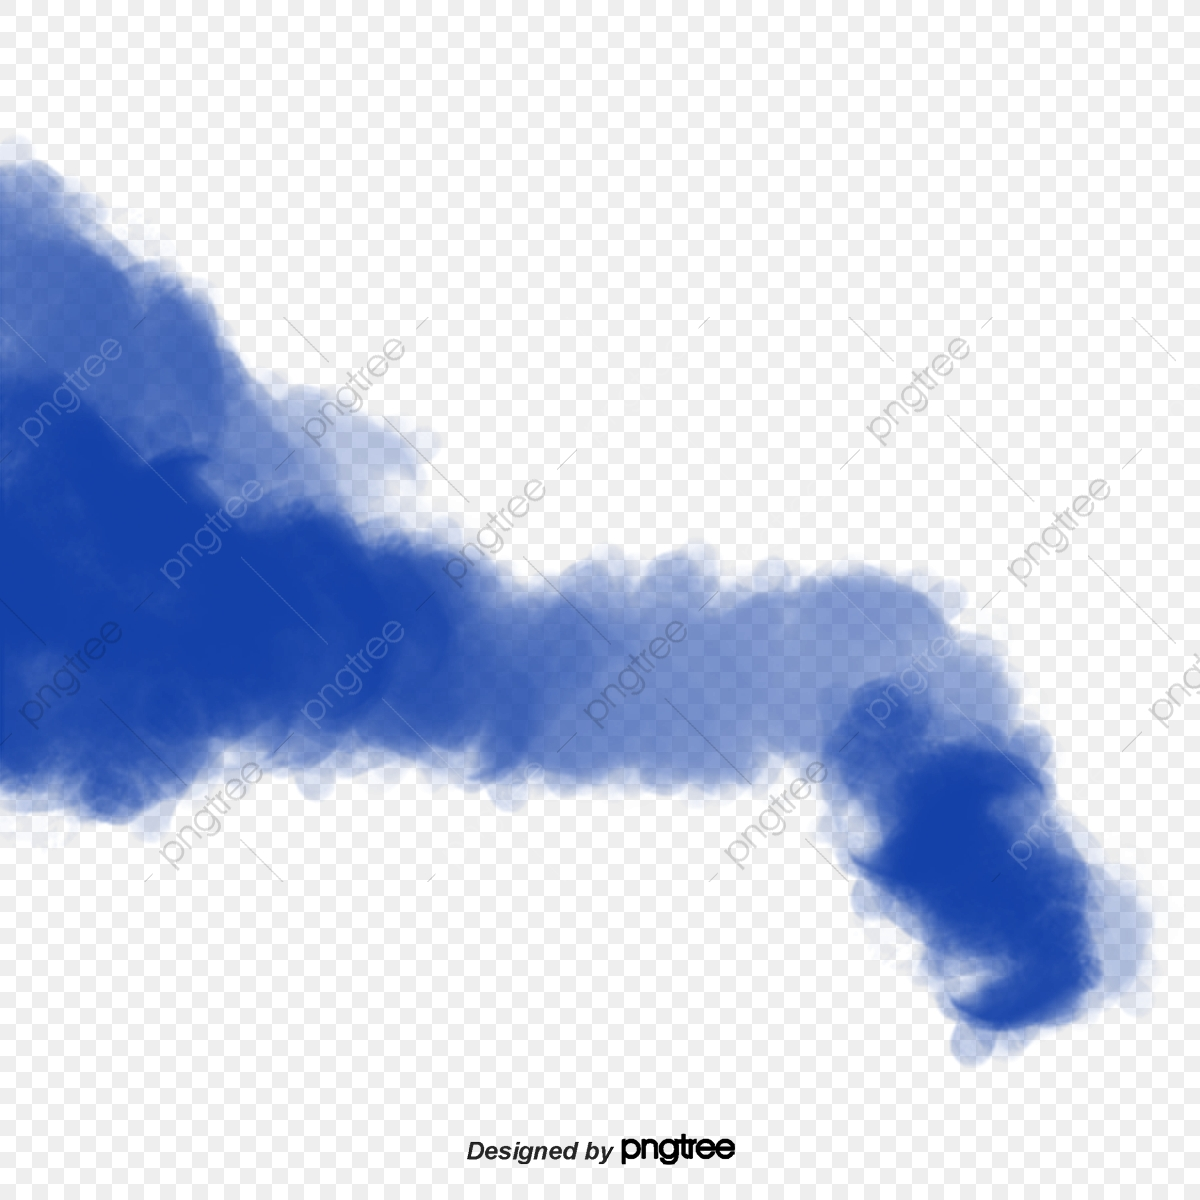 Blue Smoke, Element, Celebrating, Smoke PNG Transparent Clipart